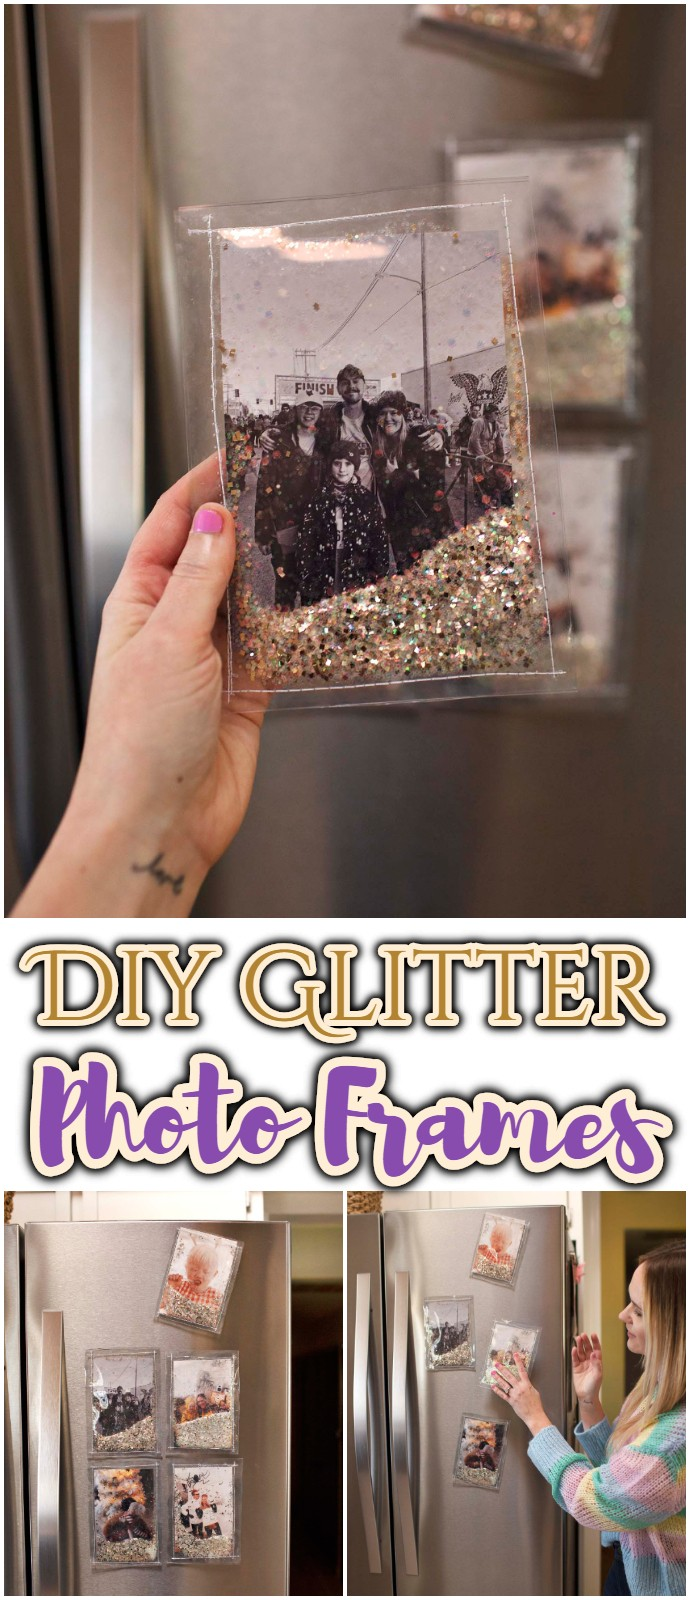 Diy Glitter Photo Frames